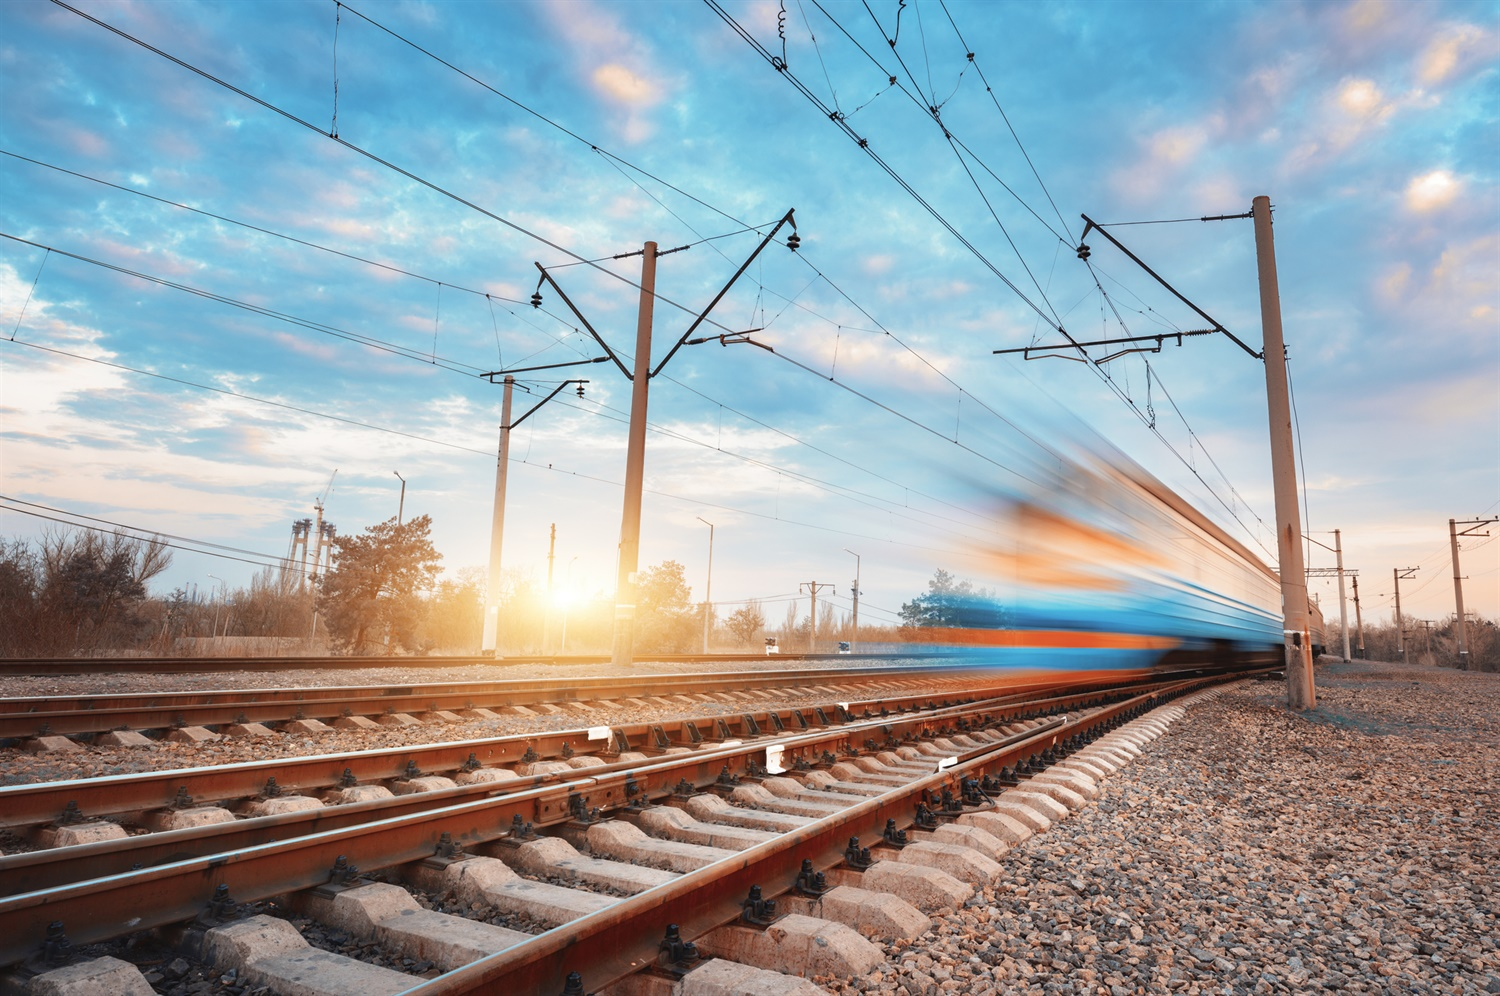 Multi-billion-pound railway investment to aid national recovery